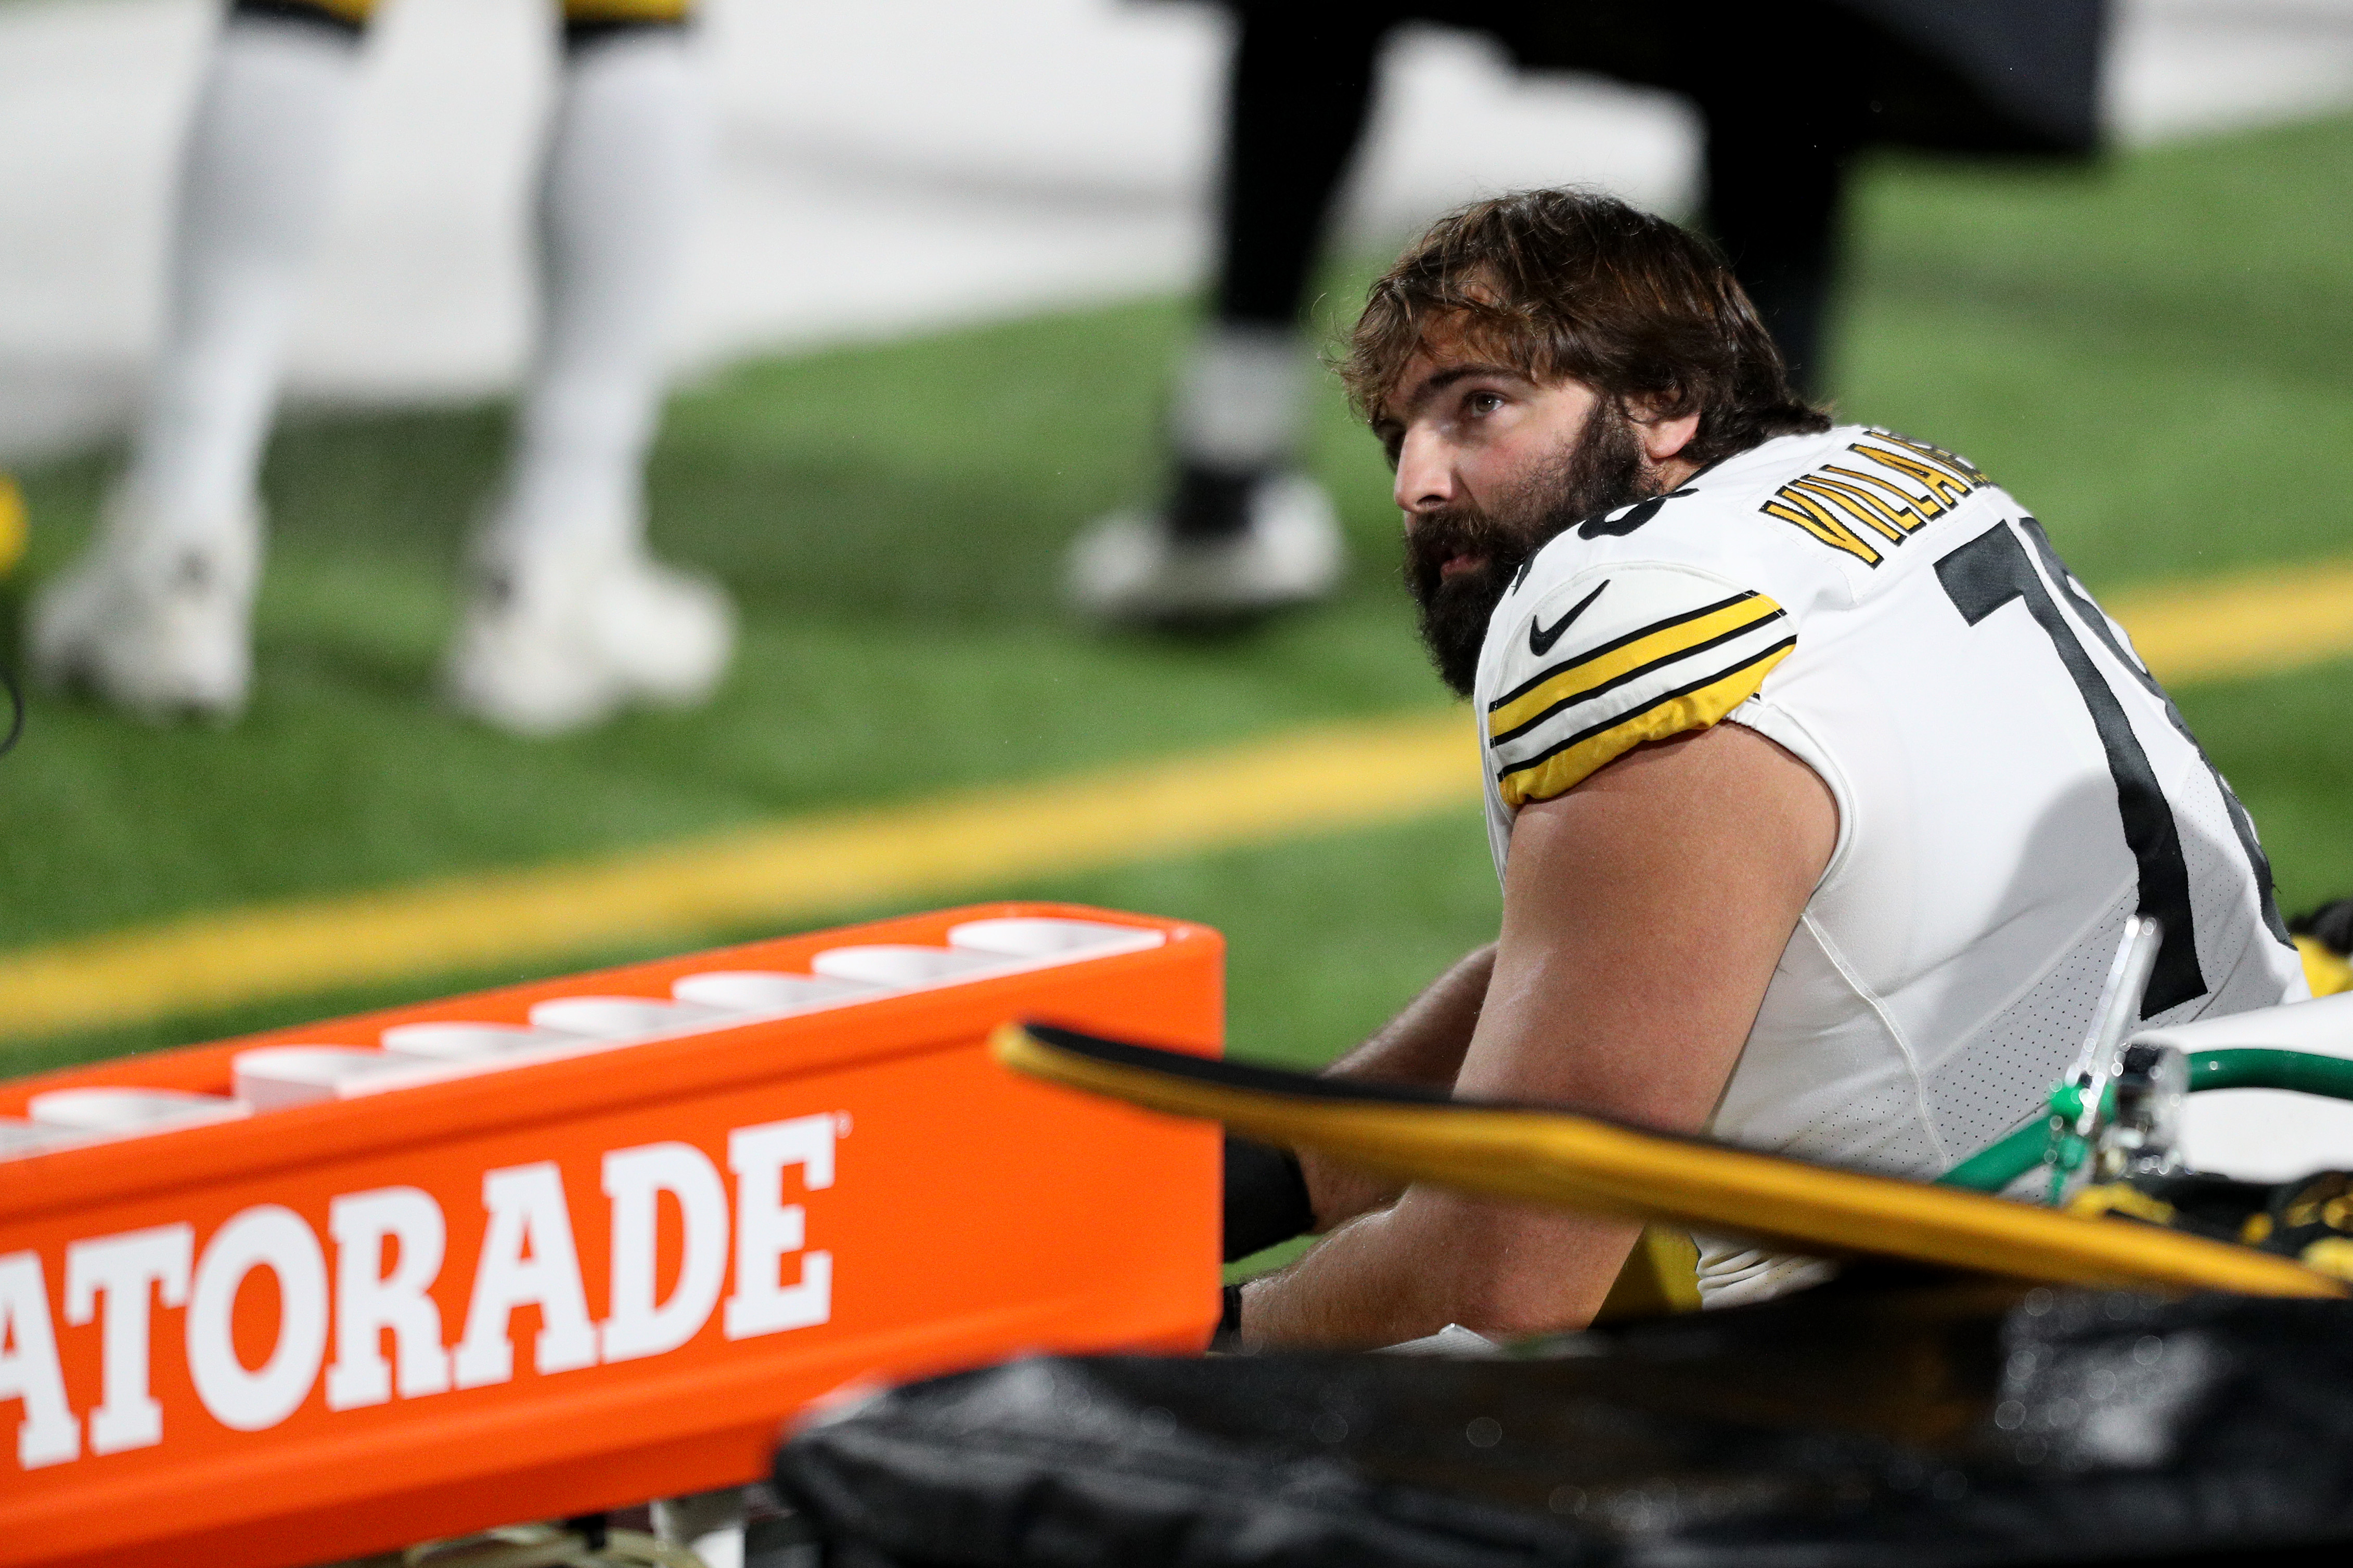 Alejandro Villanueva Just Shifted the AFC North Power Balance by Leaving Ben Roethlisberger and the Steelers to Sign With the Ravens